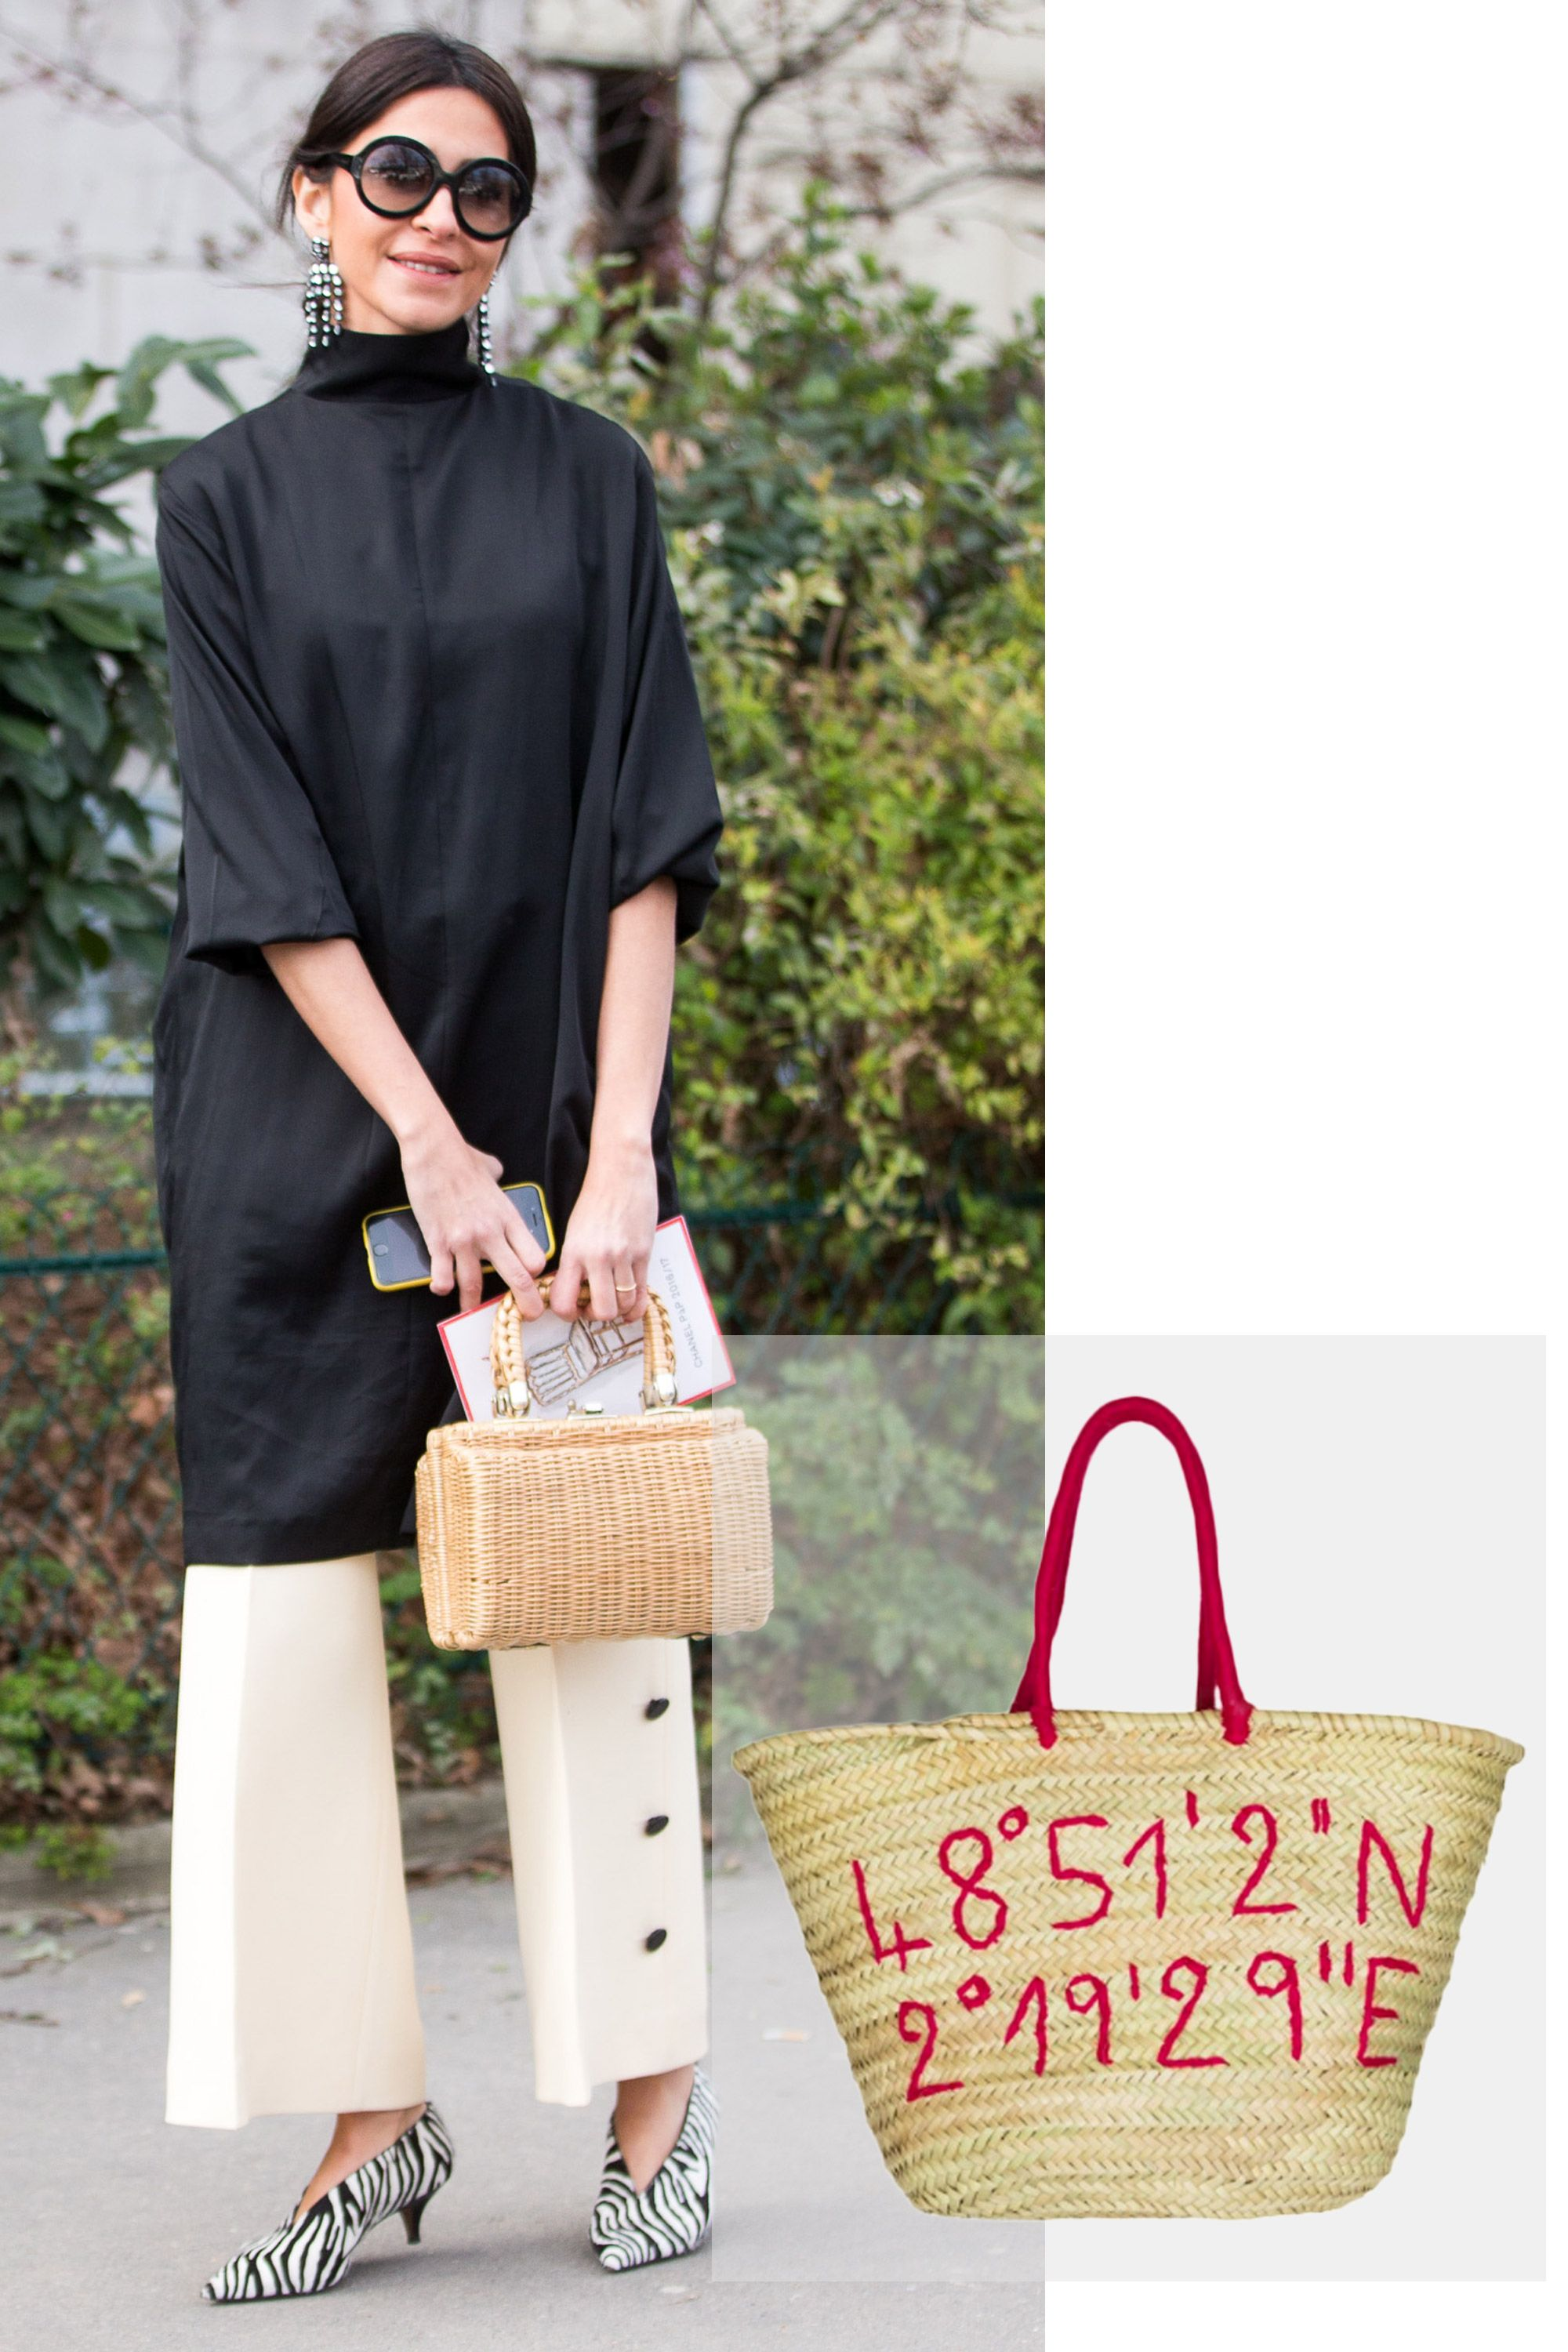 """<p>""""So many cool girls are <a href=""""http://www.elle.com/fashion/g28707/basket-bag-trends/"""" target=""""_blank"""" data-tracking-id=""""recirc-text-link"""">carrying a basket bag</a> á la Jane Birkin this season,"""" according to Paris-based journalist Lauren Bastide. """"It was something you usually witnessed only during summertime, but now they're wearing wearing them in winter, too. That's the way Jane wore it—rain or shine."""" </p>  <p><em data-redactor-tag=""""em"""">Kilometre GPS Bag, $85; </em><a href=""""https://kilometre.paris/collection/gps-basket/"""" target=""""_blank"""" data-tracking-id=""""recirc-text-link""""><em data-redactor-tag=""""em"""">kilometre.paris</em></a></p>"""